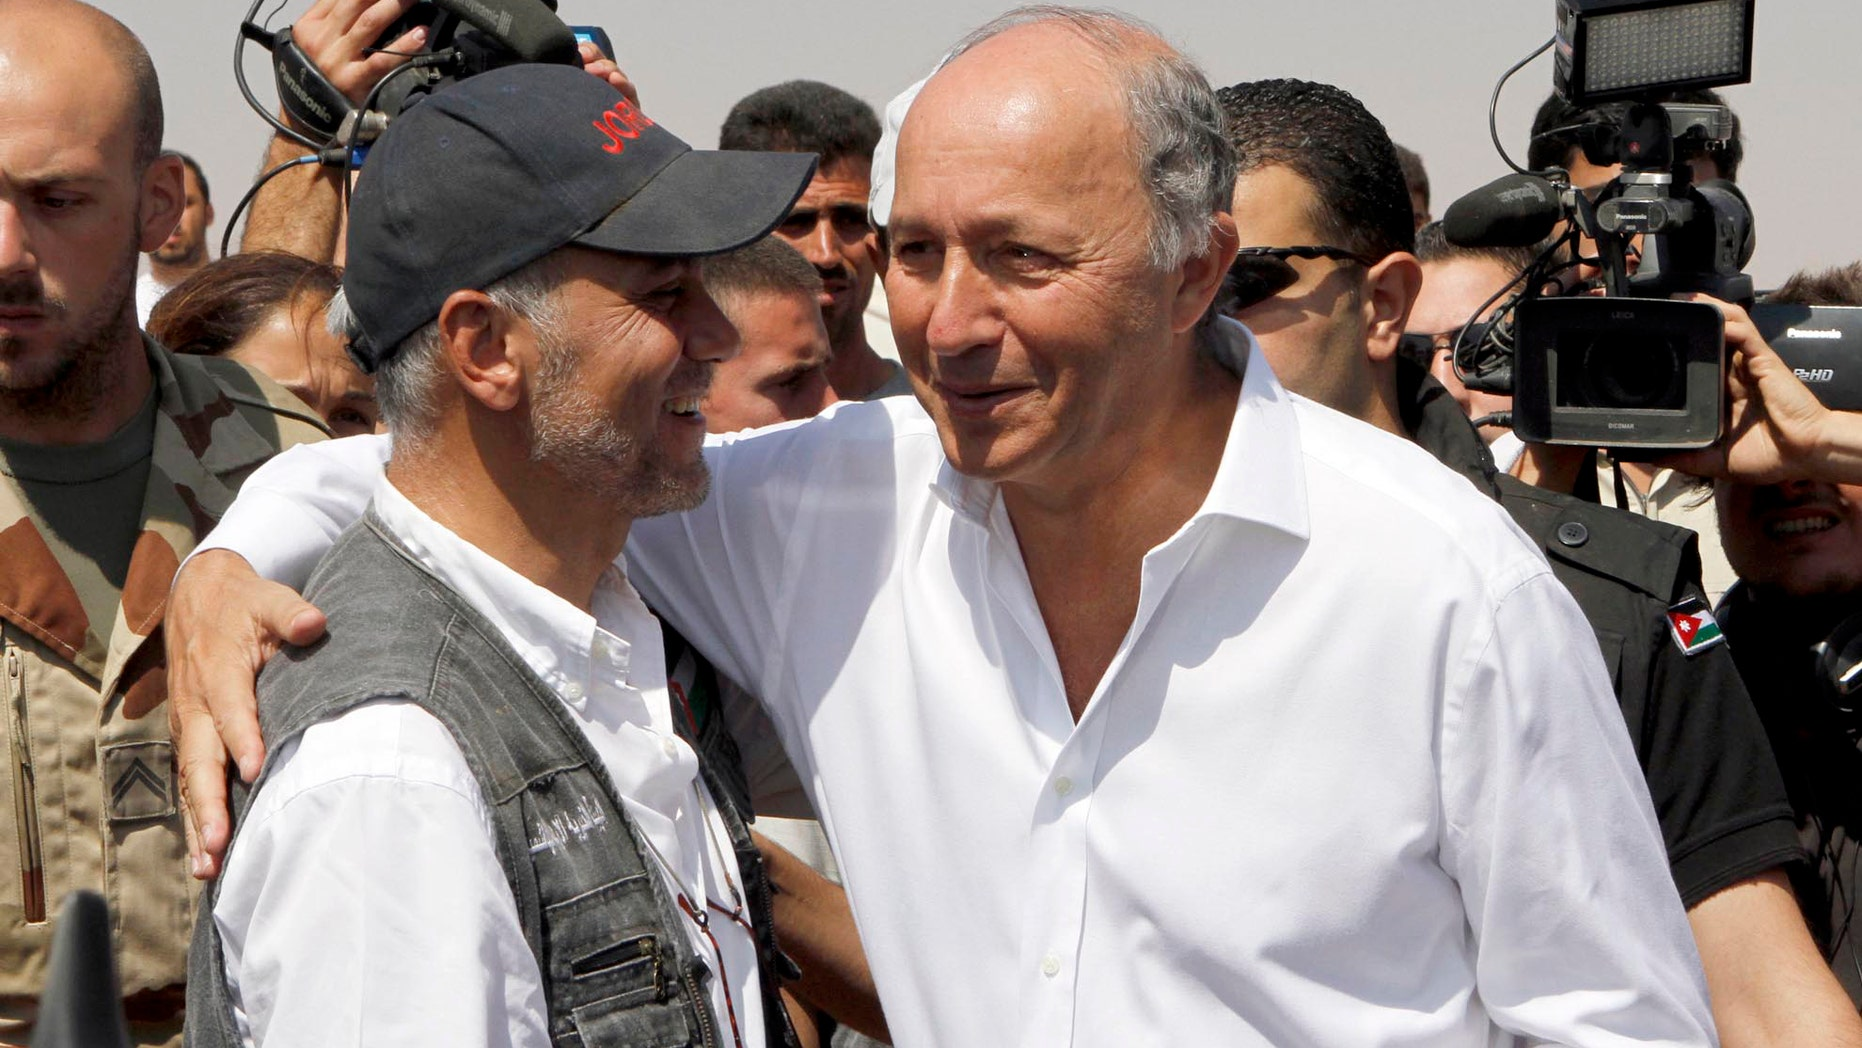 French Foreign Minister Laurent Fabius, right,  greets an official from the Jordan Hashemite Charity Organization during his visit to the Zaatari Syrian refugee camp in Mafraq, Jordan, Thursday,  Aug. 16,  2012. Fabius is on a three-day visit to countries neighboring Syria. (AP Photo/Raad Adayleh)